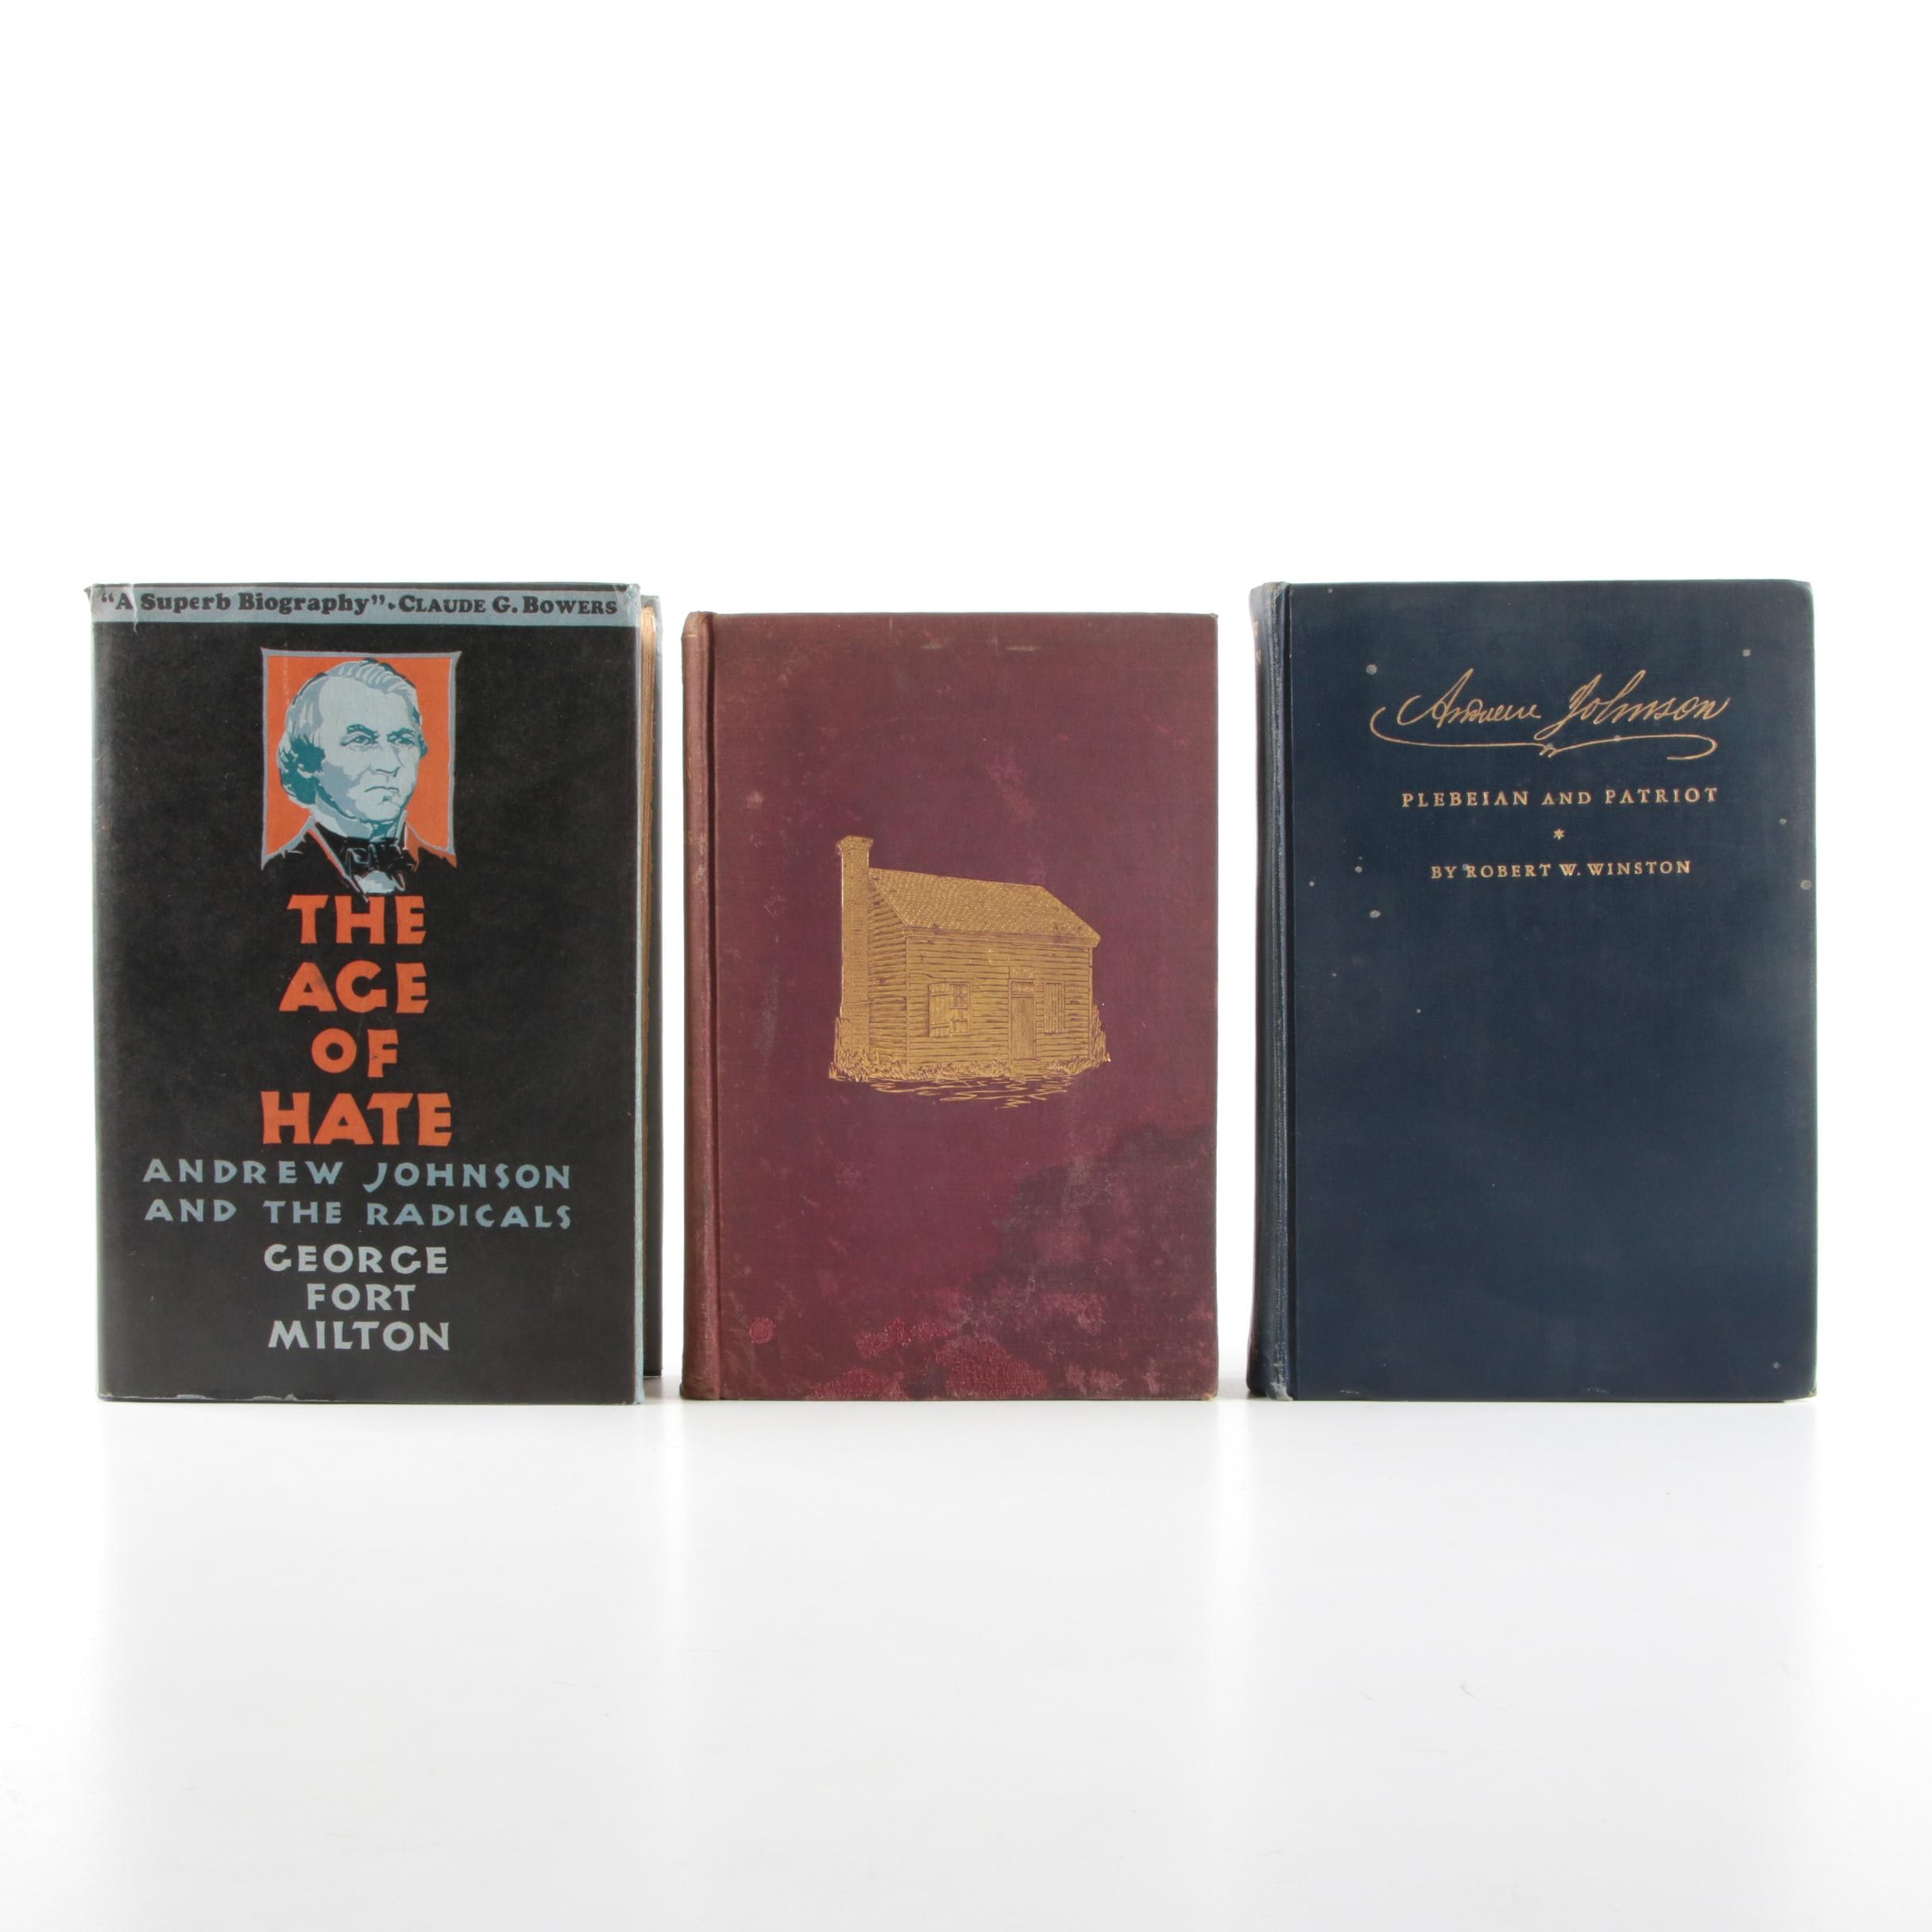 Three Early 20th-Century Books on Andrew Johnson